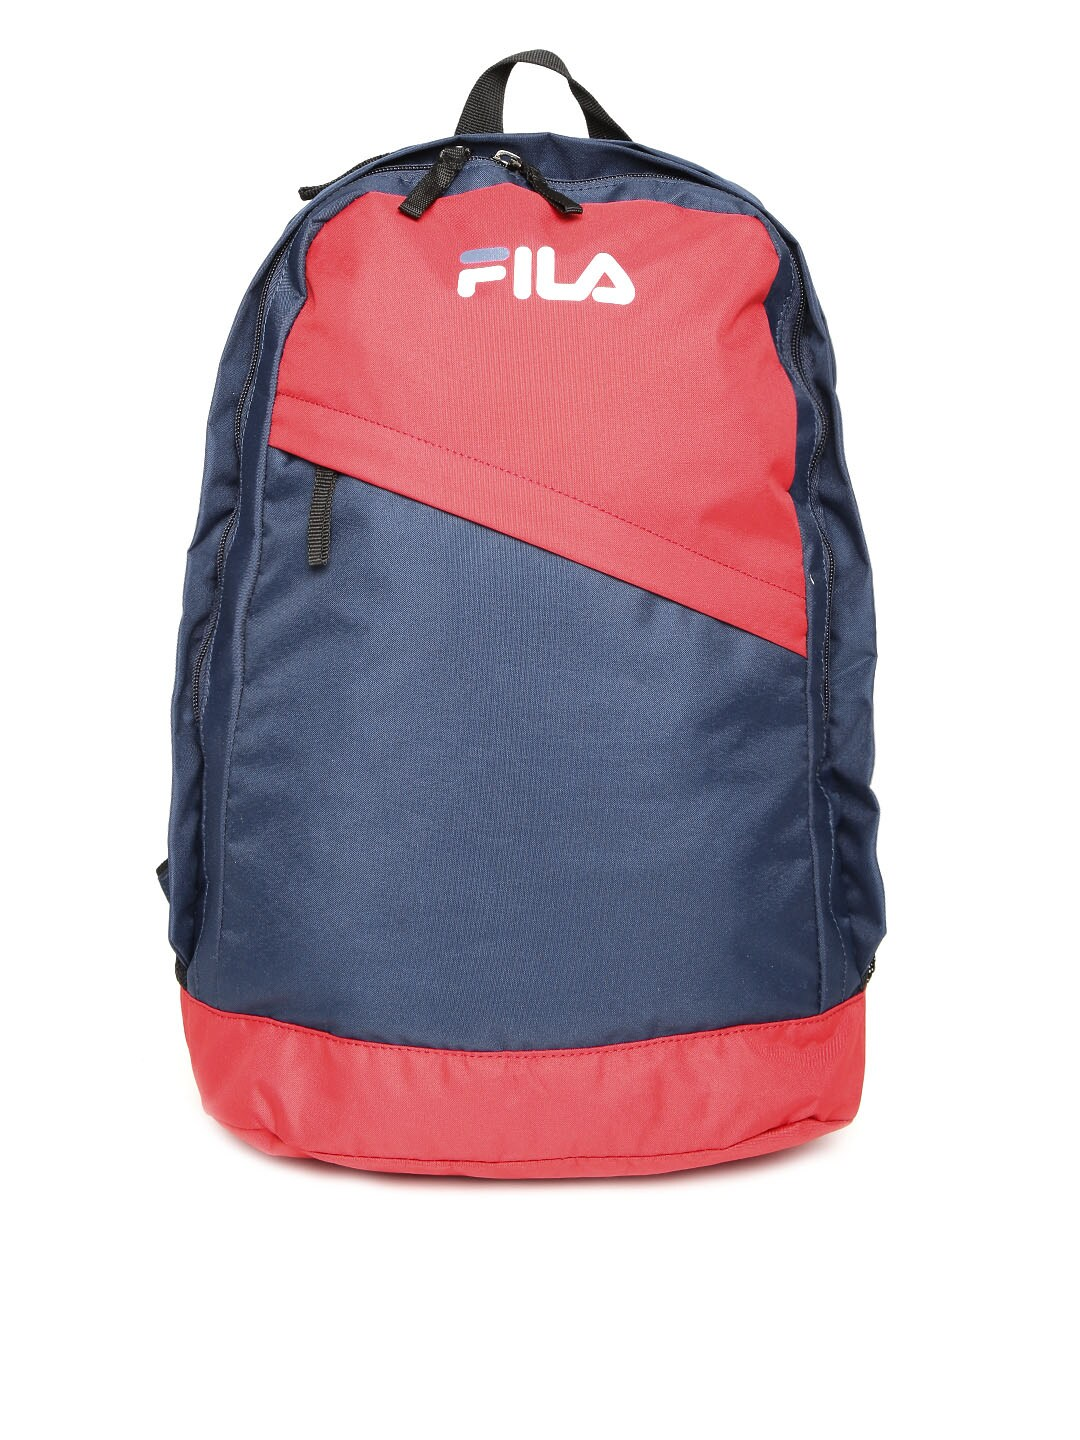 Fila Nexus - Buy Fila Nexus online in India